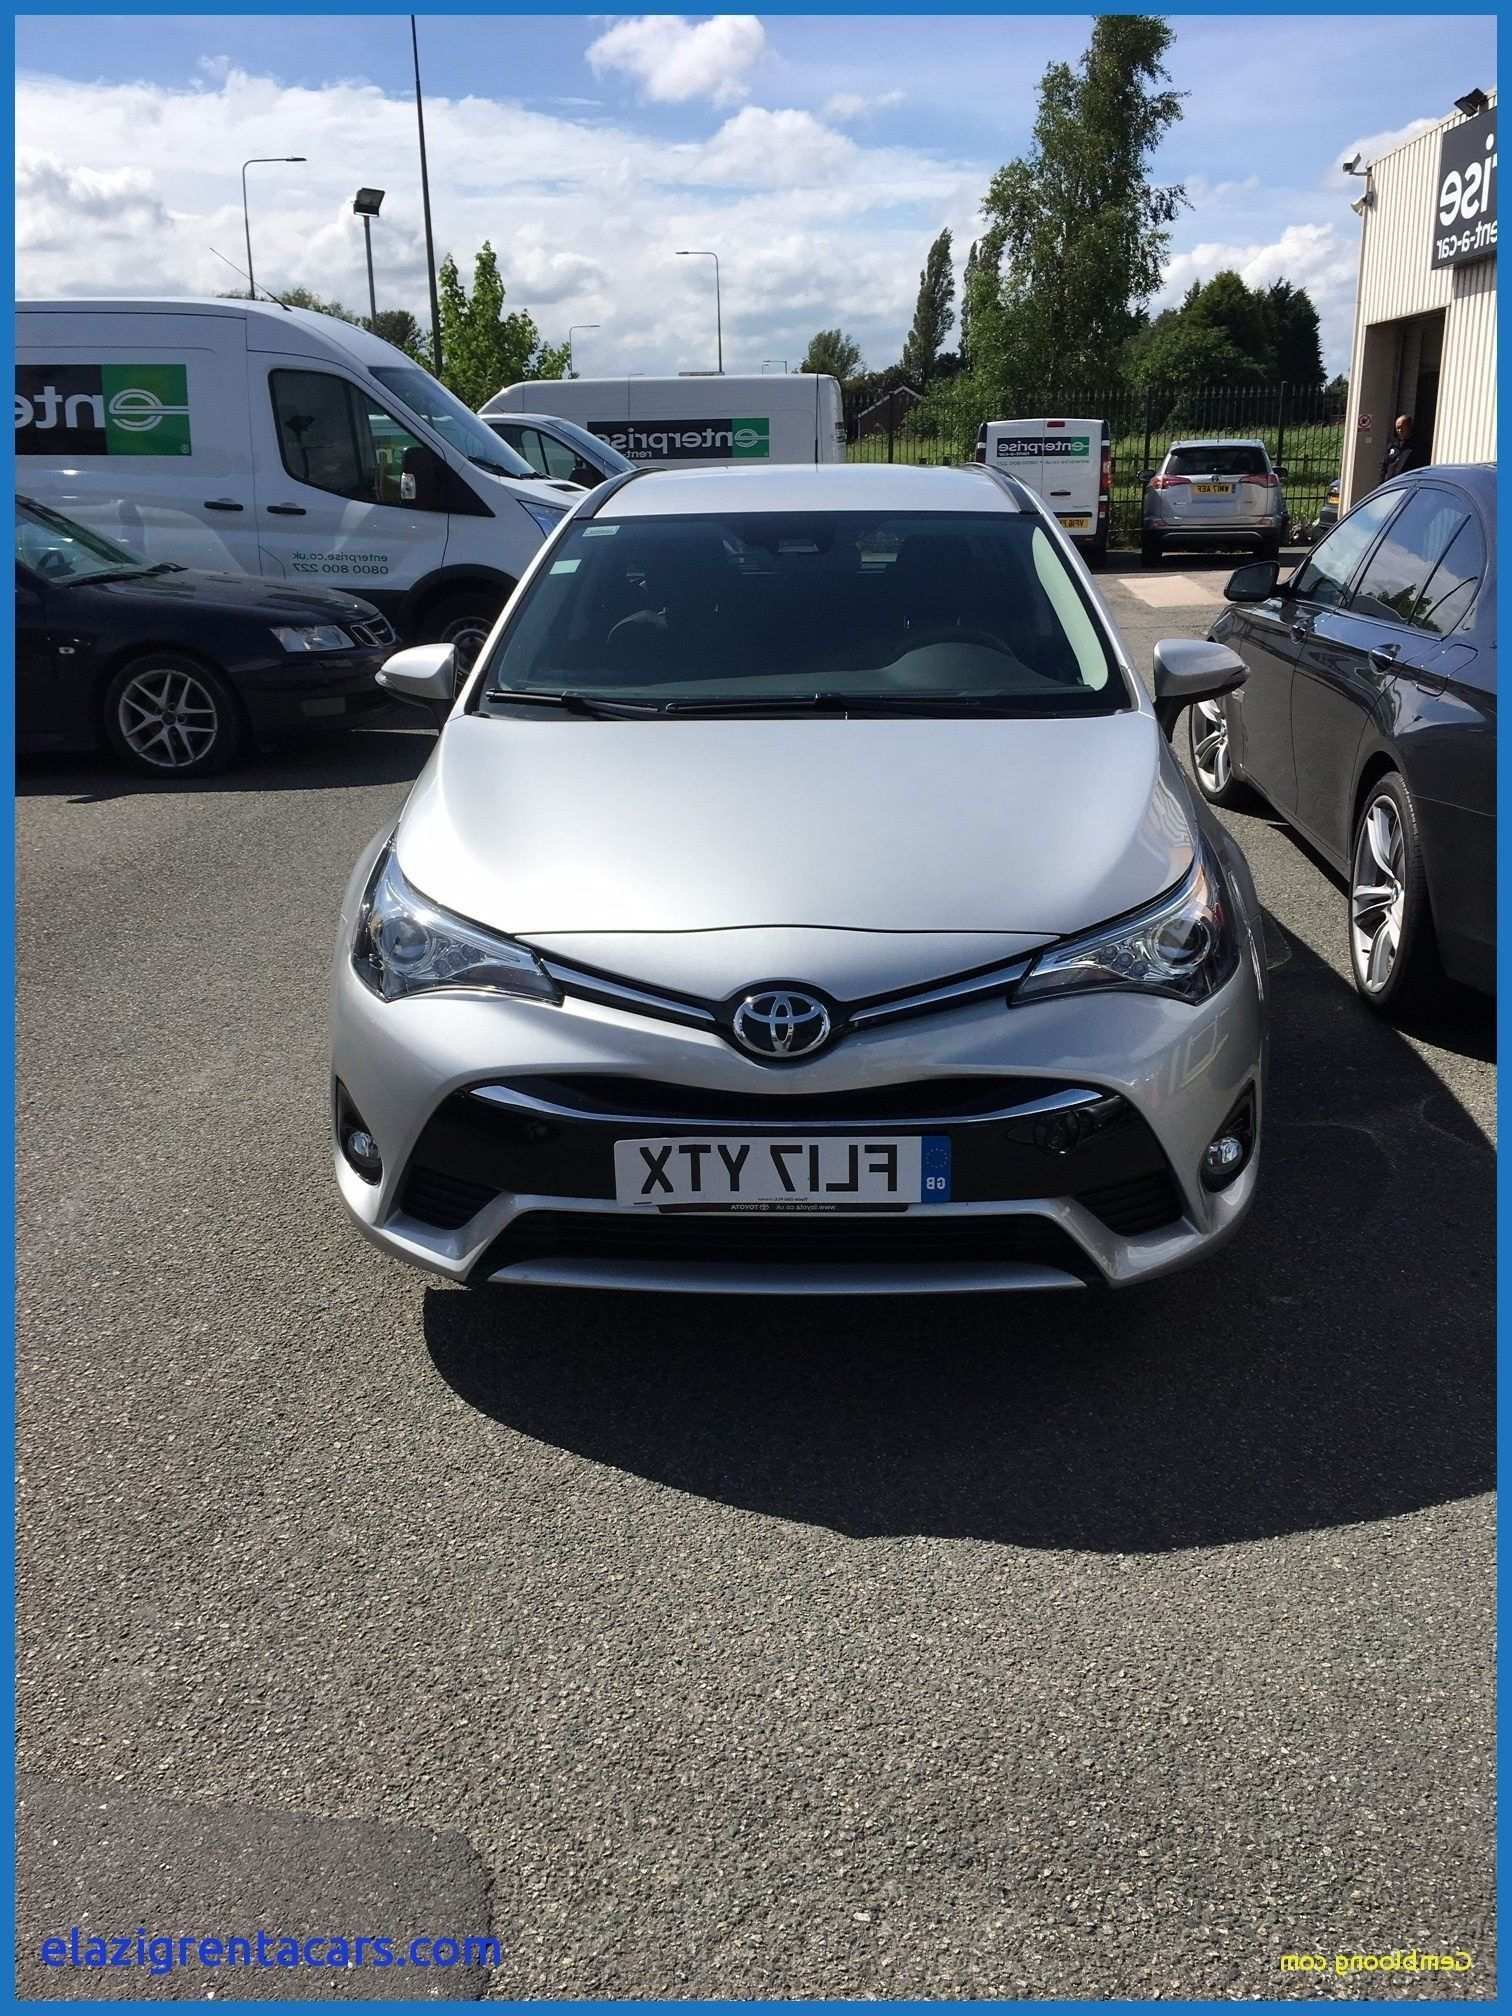 74 Gallery of Toyota Wigo 2019 Release Date Research New with Toyota Wigo 2019 Release Date